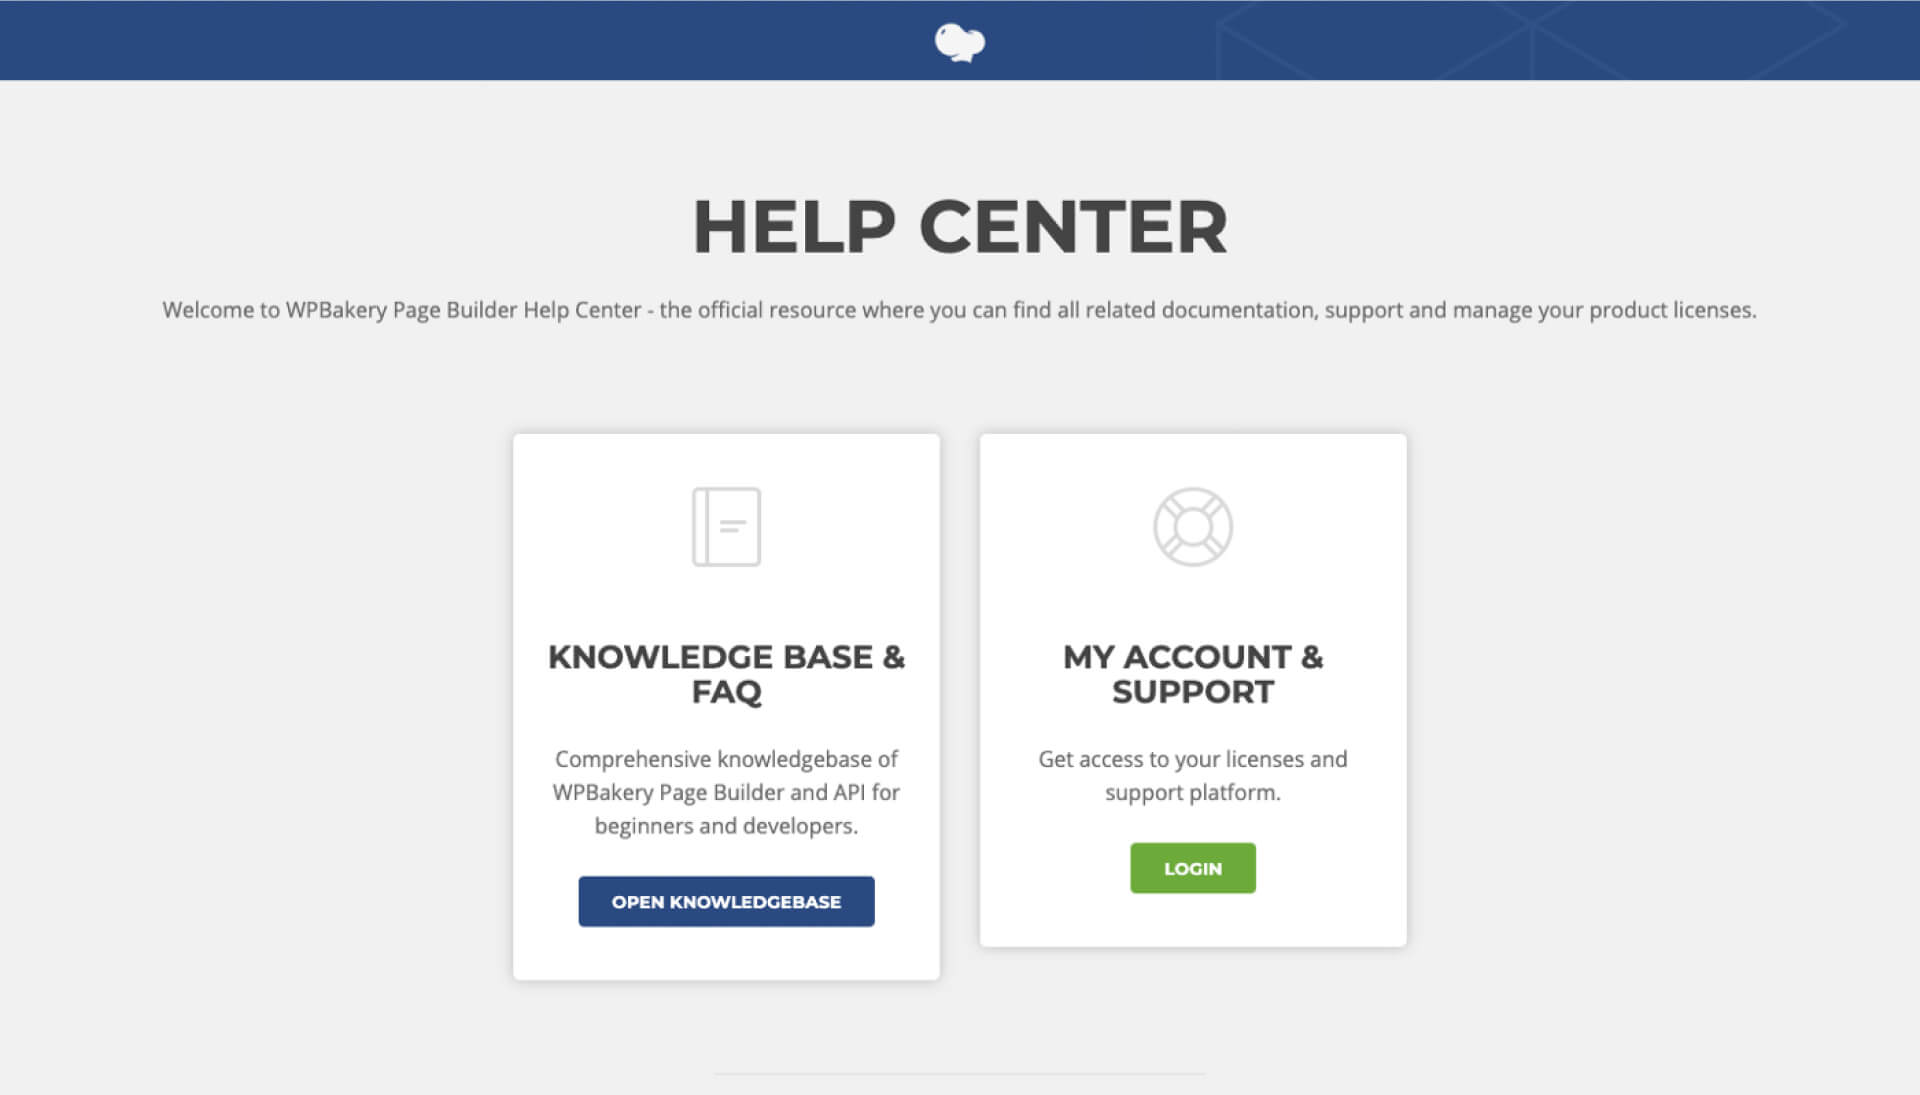 WPBakery Page Builder 官網的 Help Center 頁面